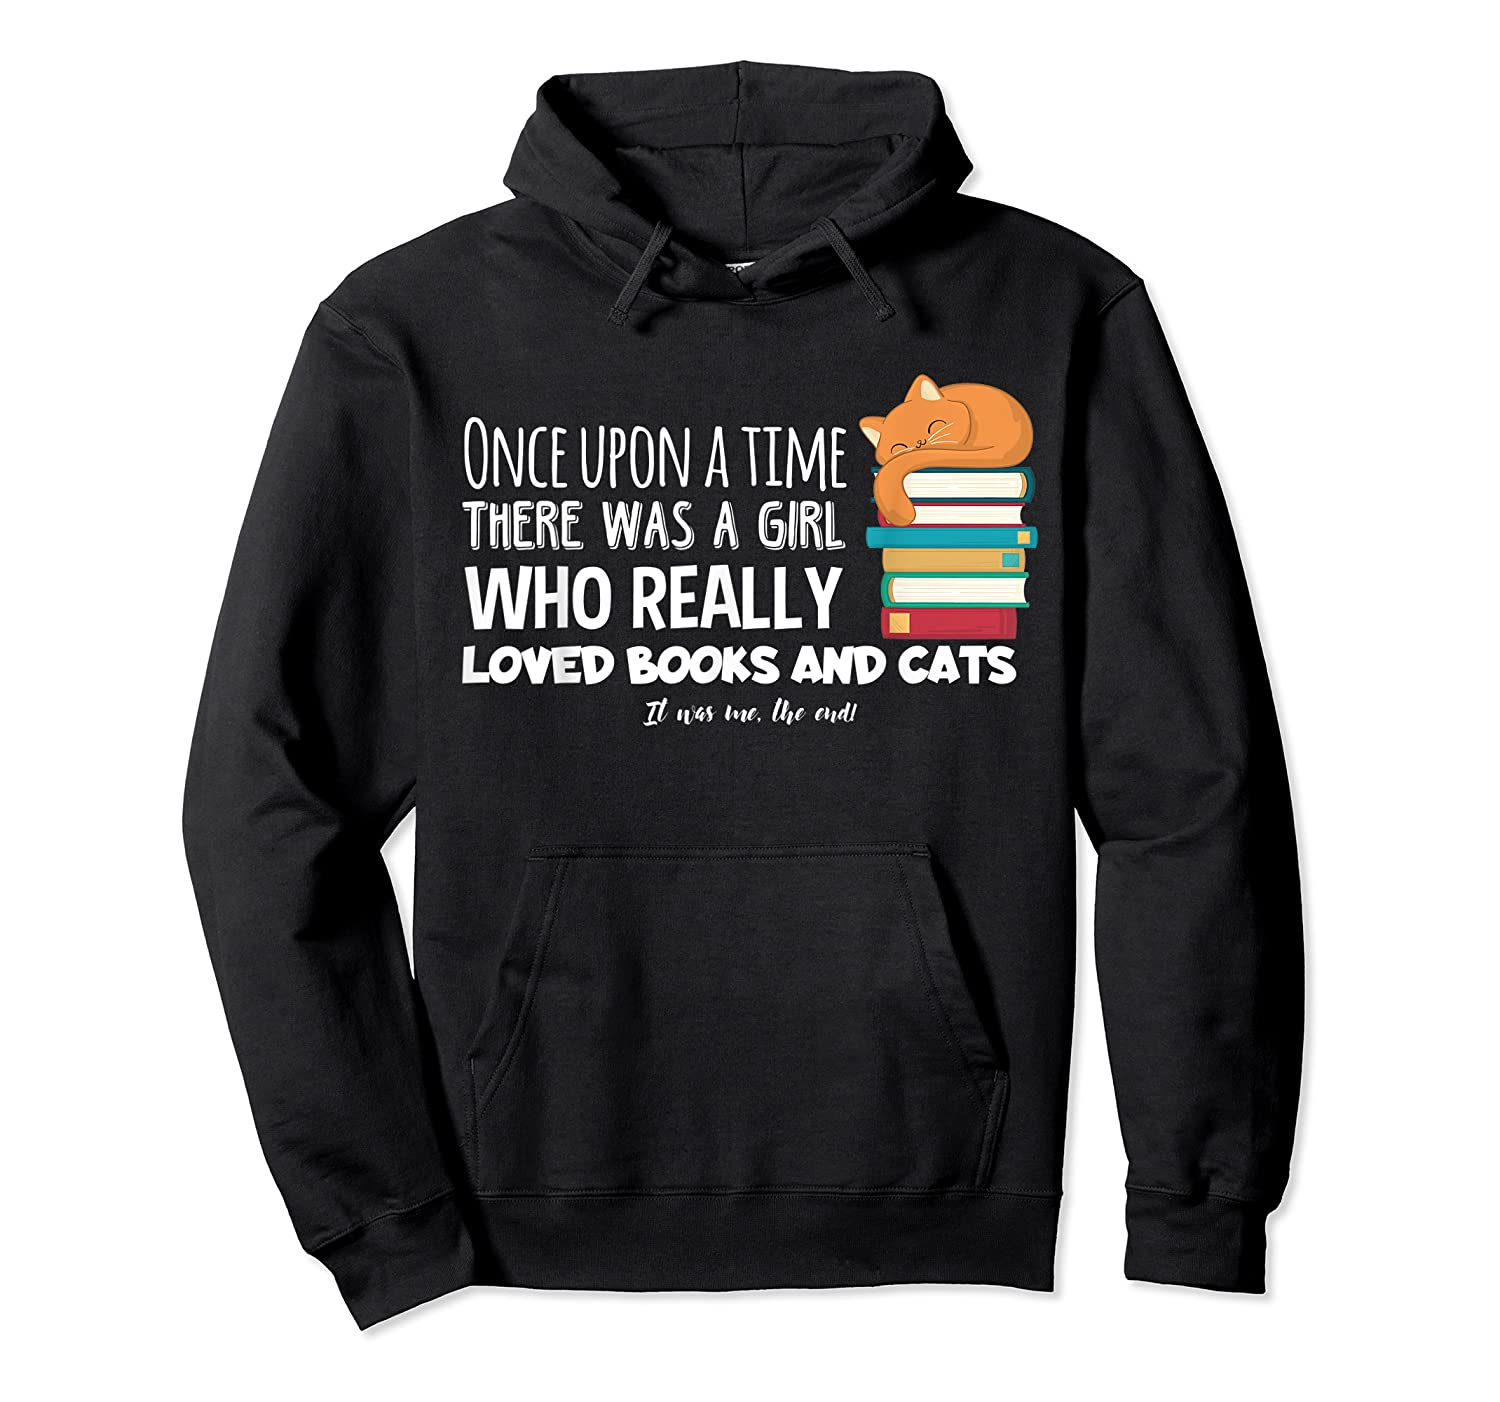 Once Upon A Time There Was A Girl Loved Books Cats Shirt Unisex Pullover Hoodie